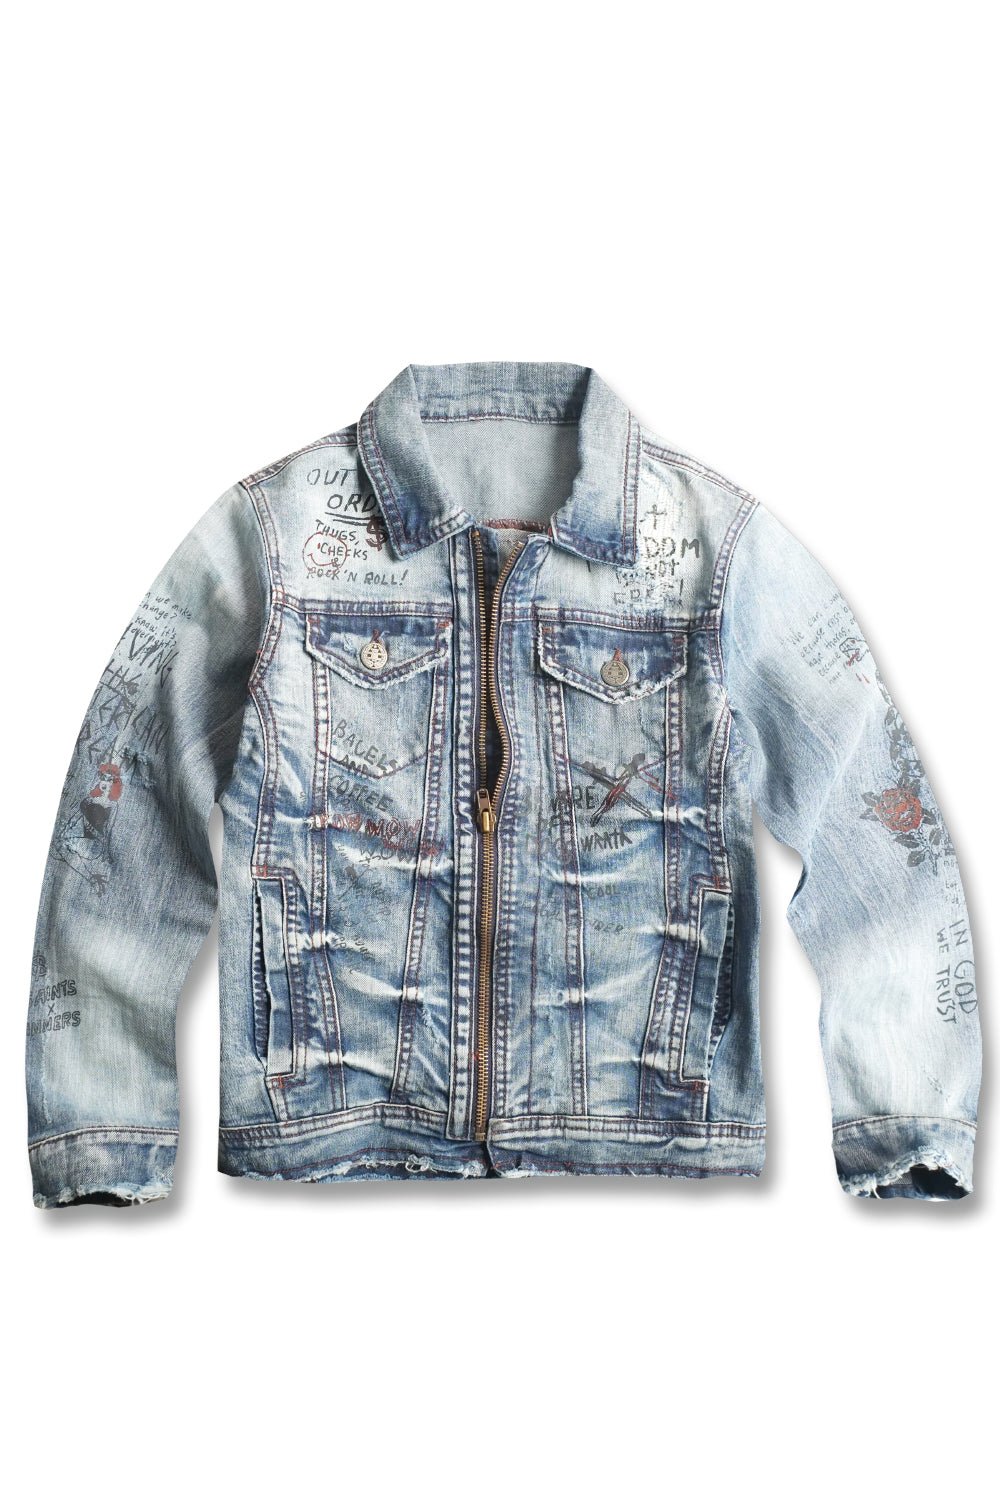 Jordan Craig - Kids Doodle Denim Jacket (Aged Wash)